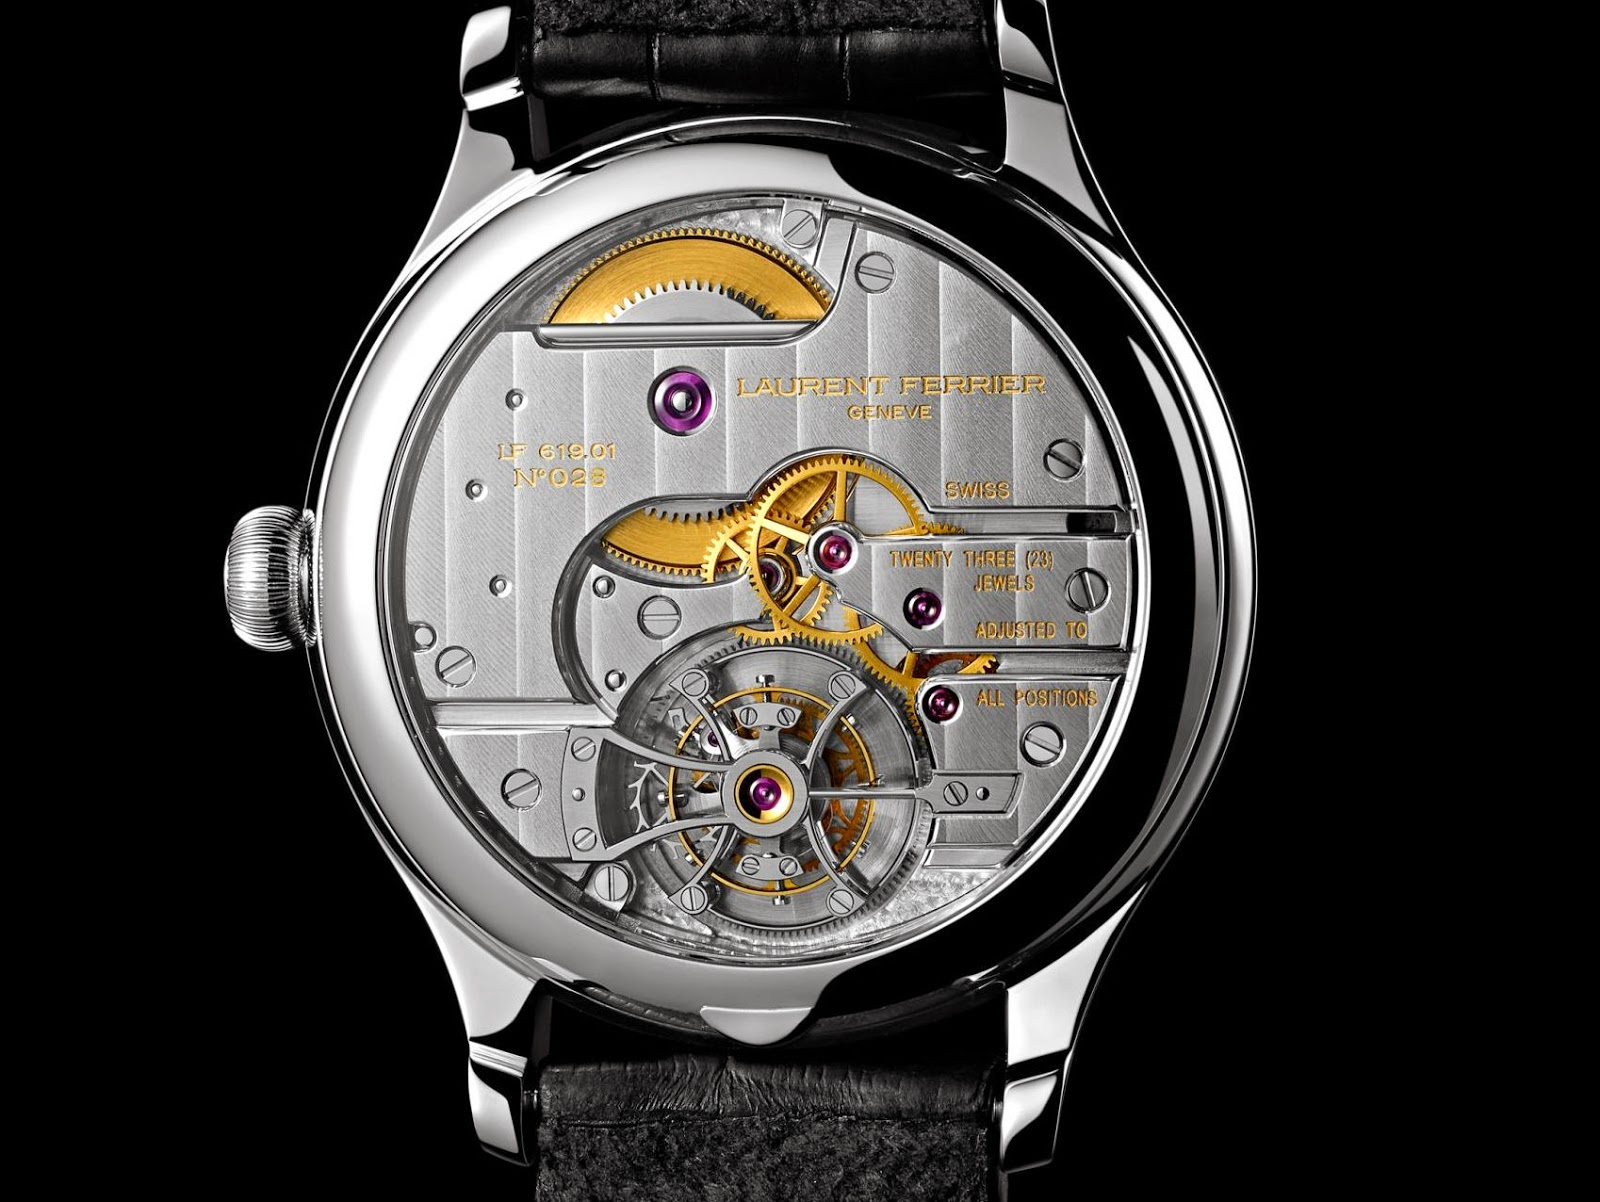 Laurent Ferrier Tourbillon